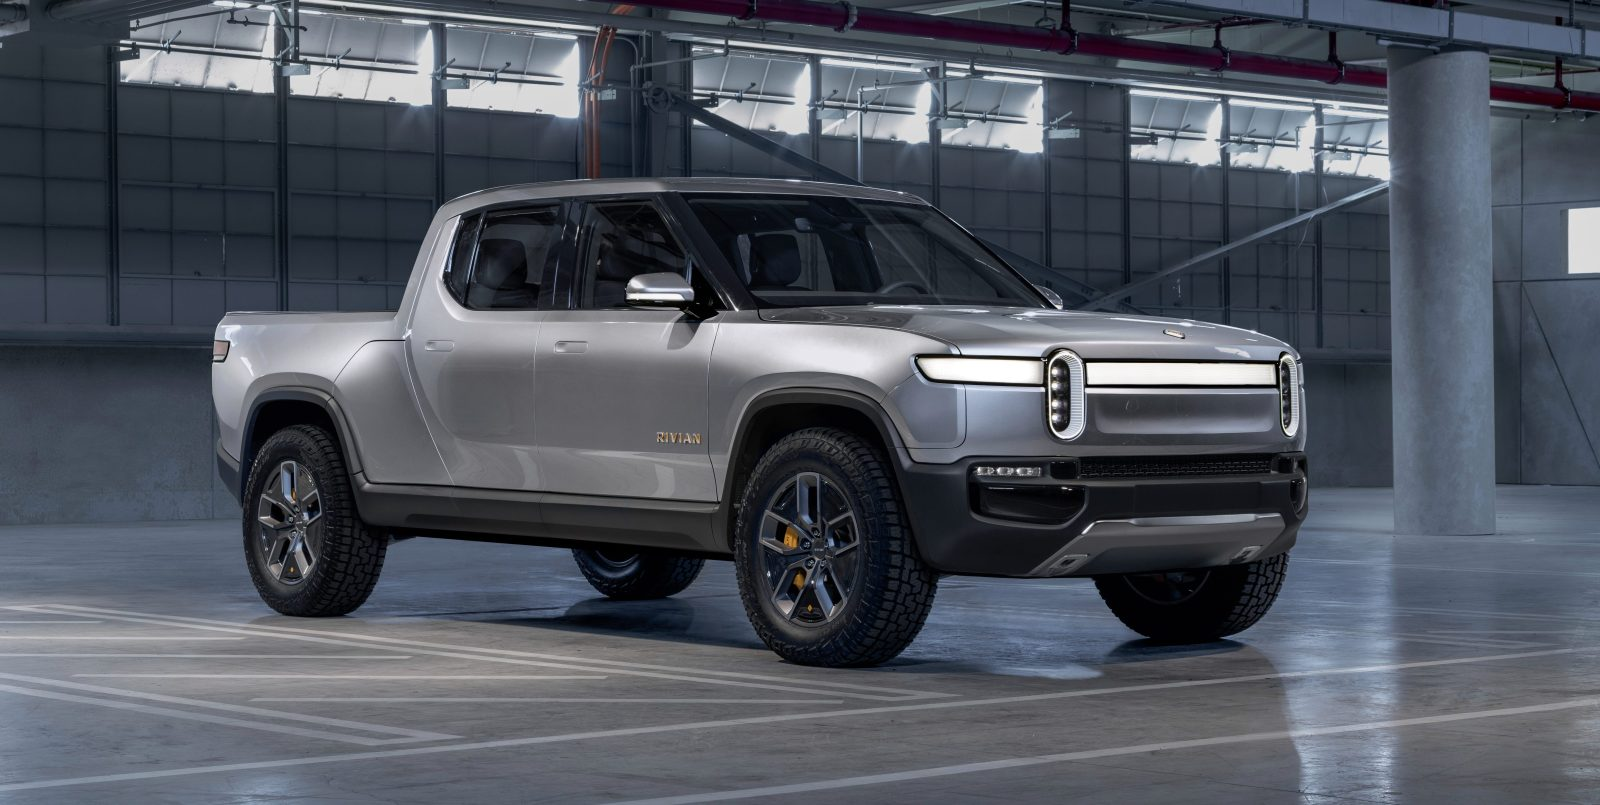 Electric pickup truck startup Rivian confirms $700 million round of funding led by Amazon